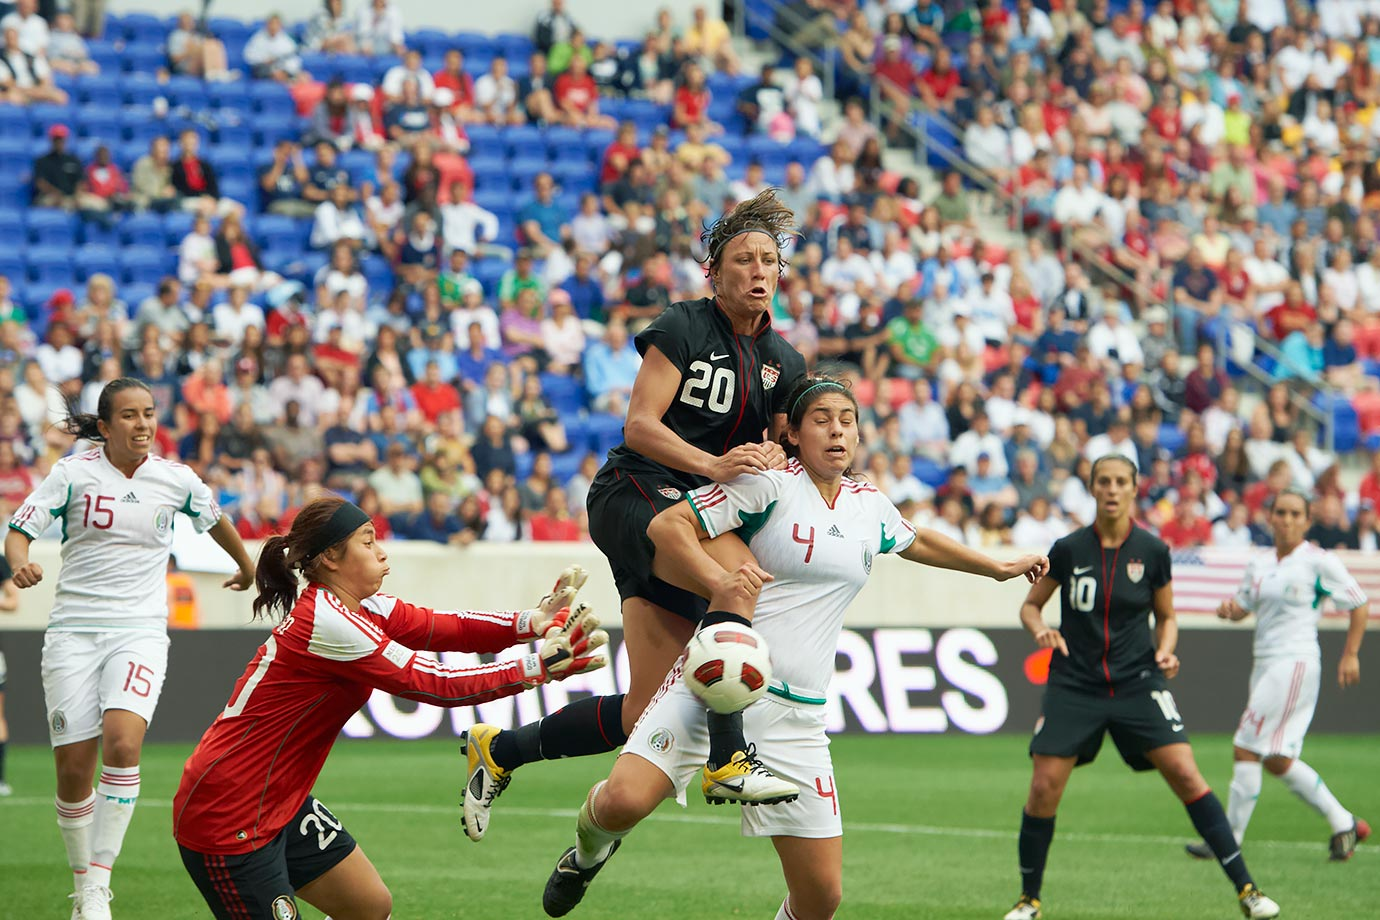 June 5, 2011 — USA vs. Mexico